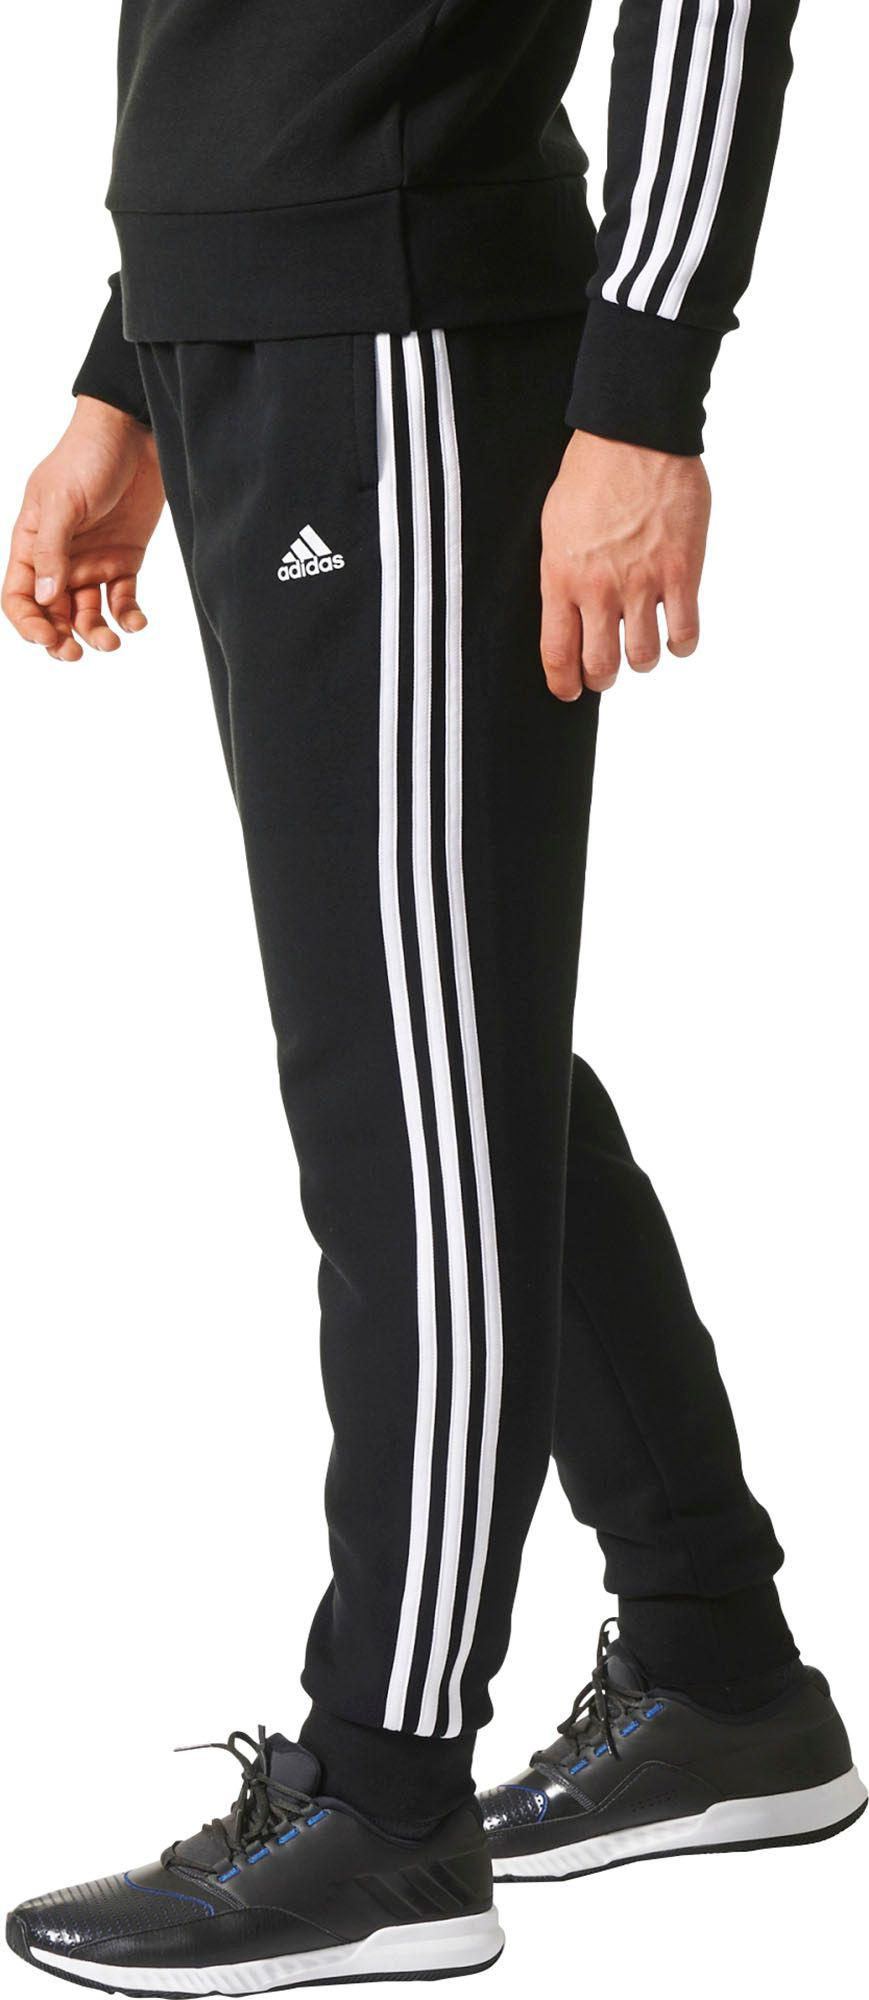 890eb08d80c4 Lyst - adidas Essentials 3-stripes Jogger Pants in Black for Men